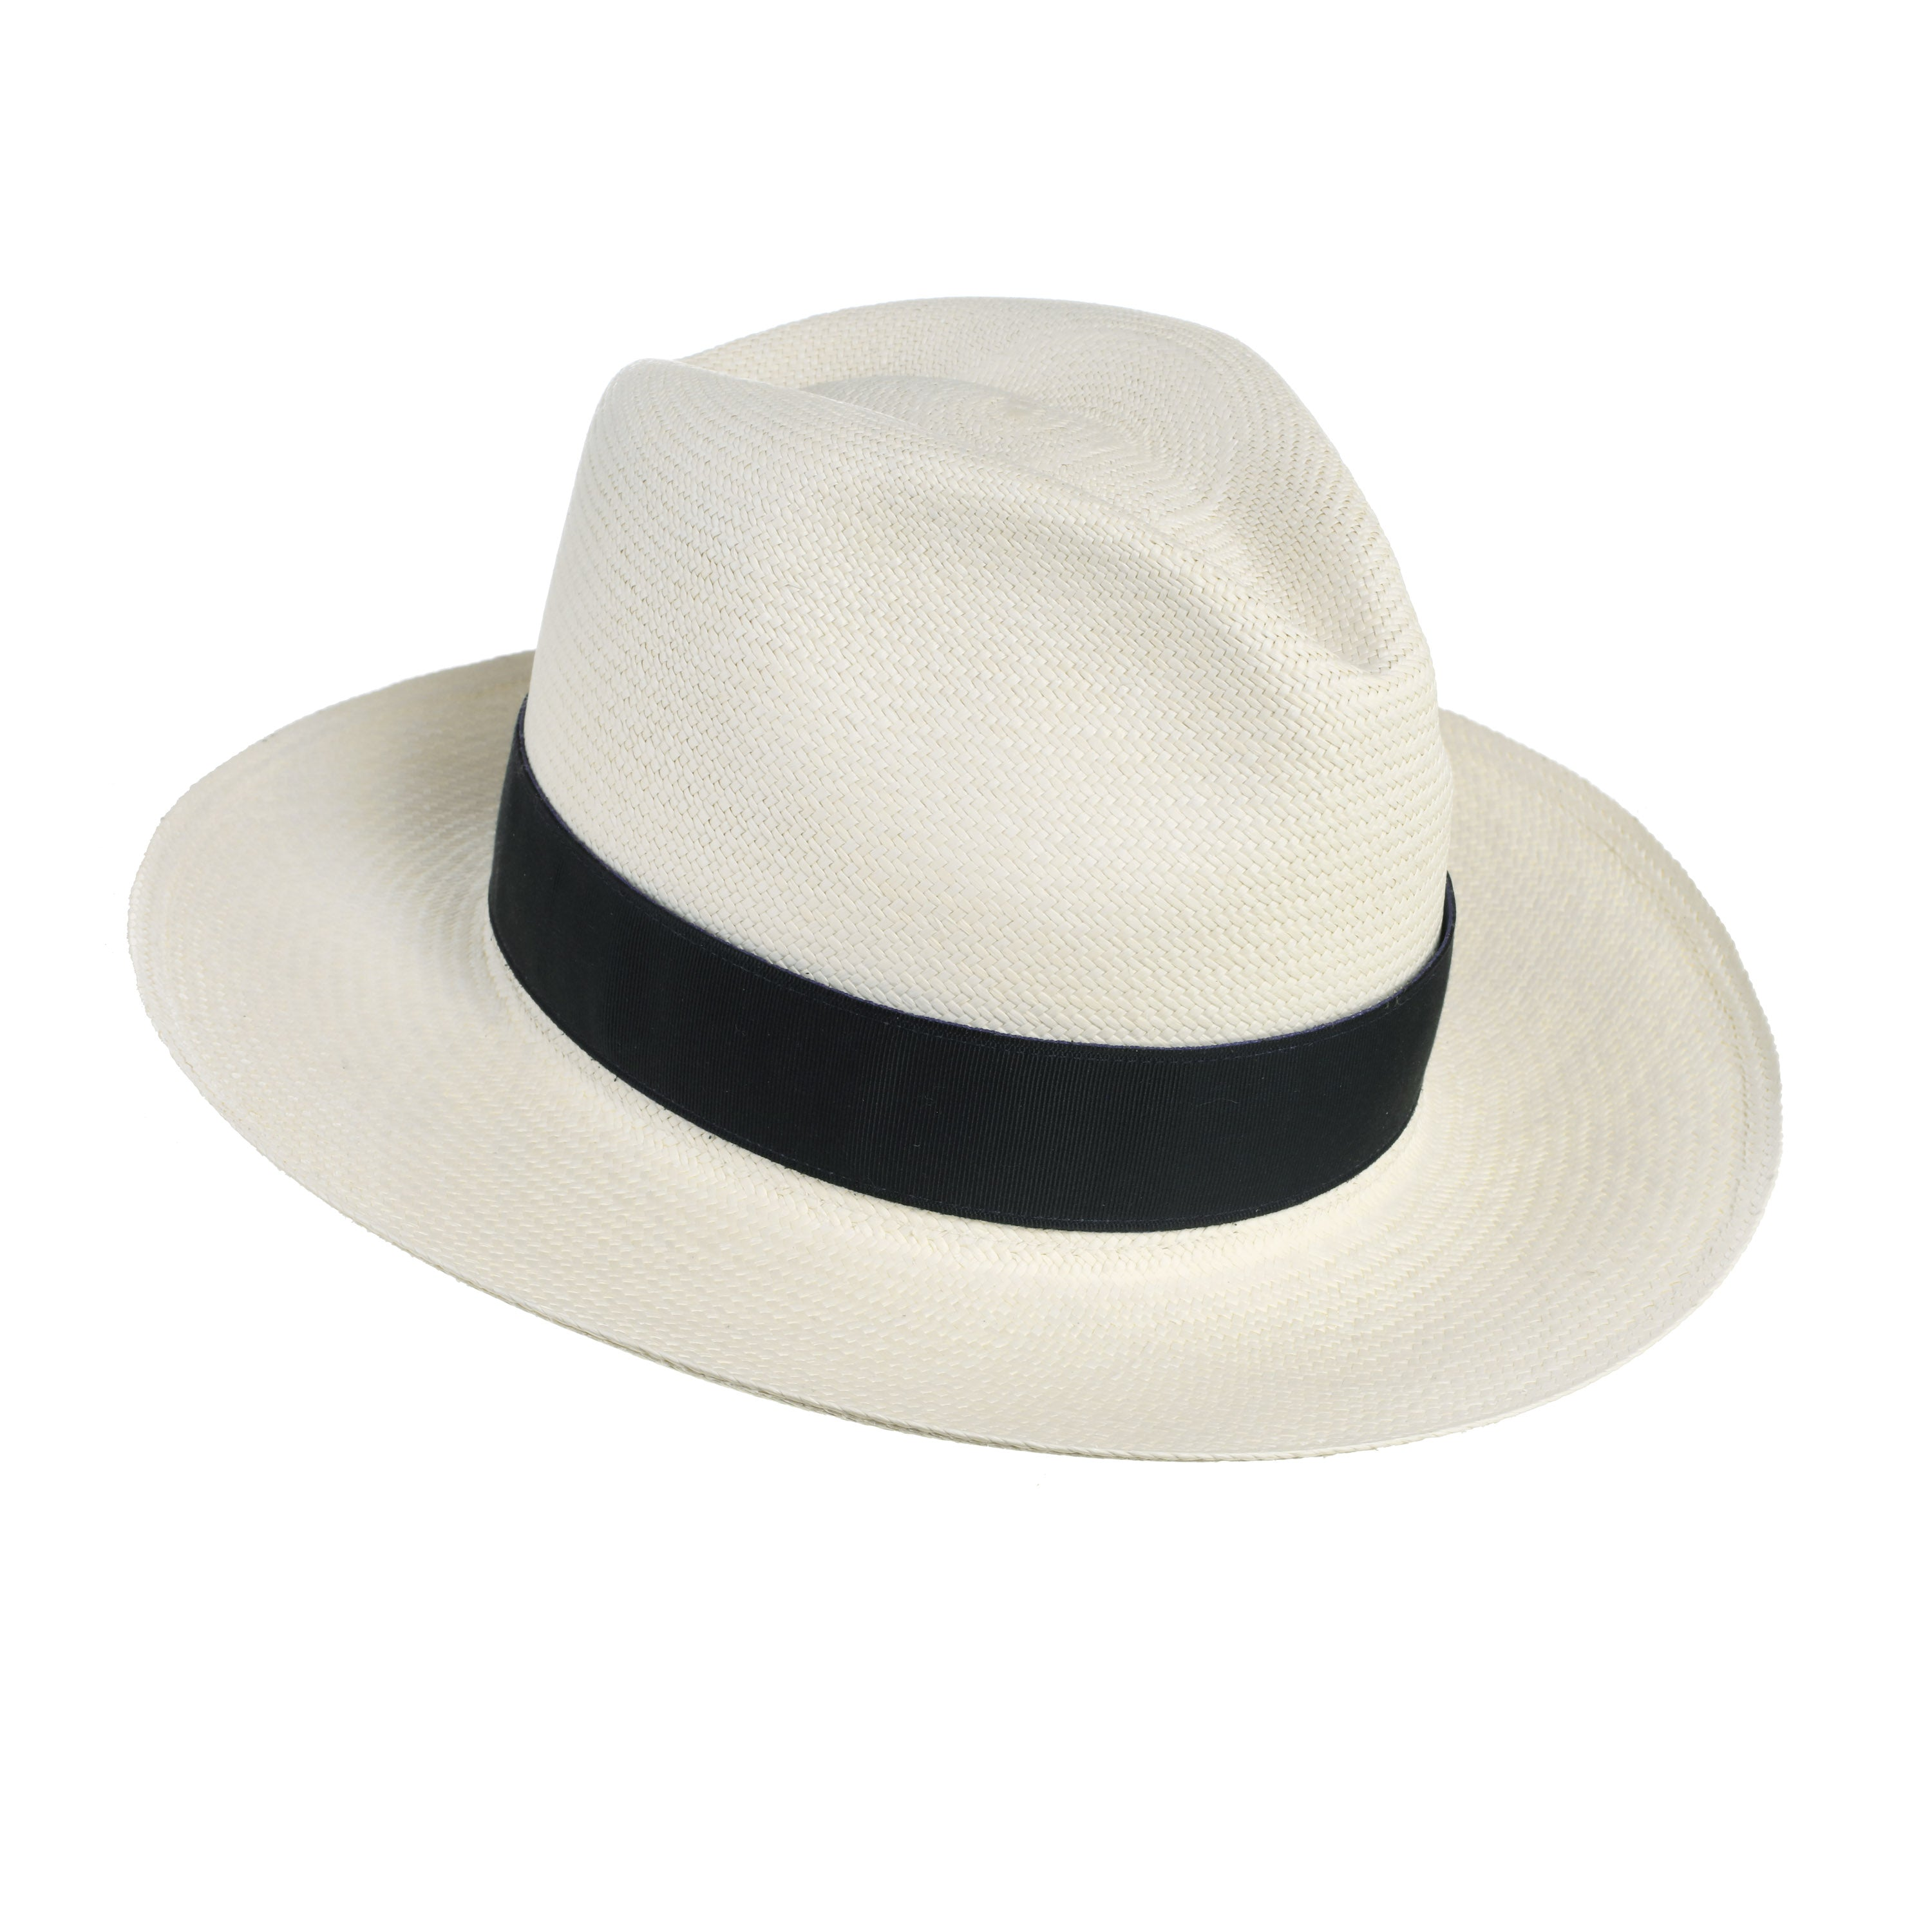 The Perfect Classic Panama Hat